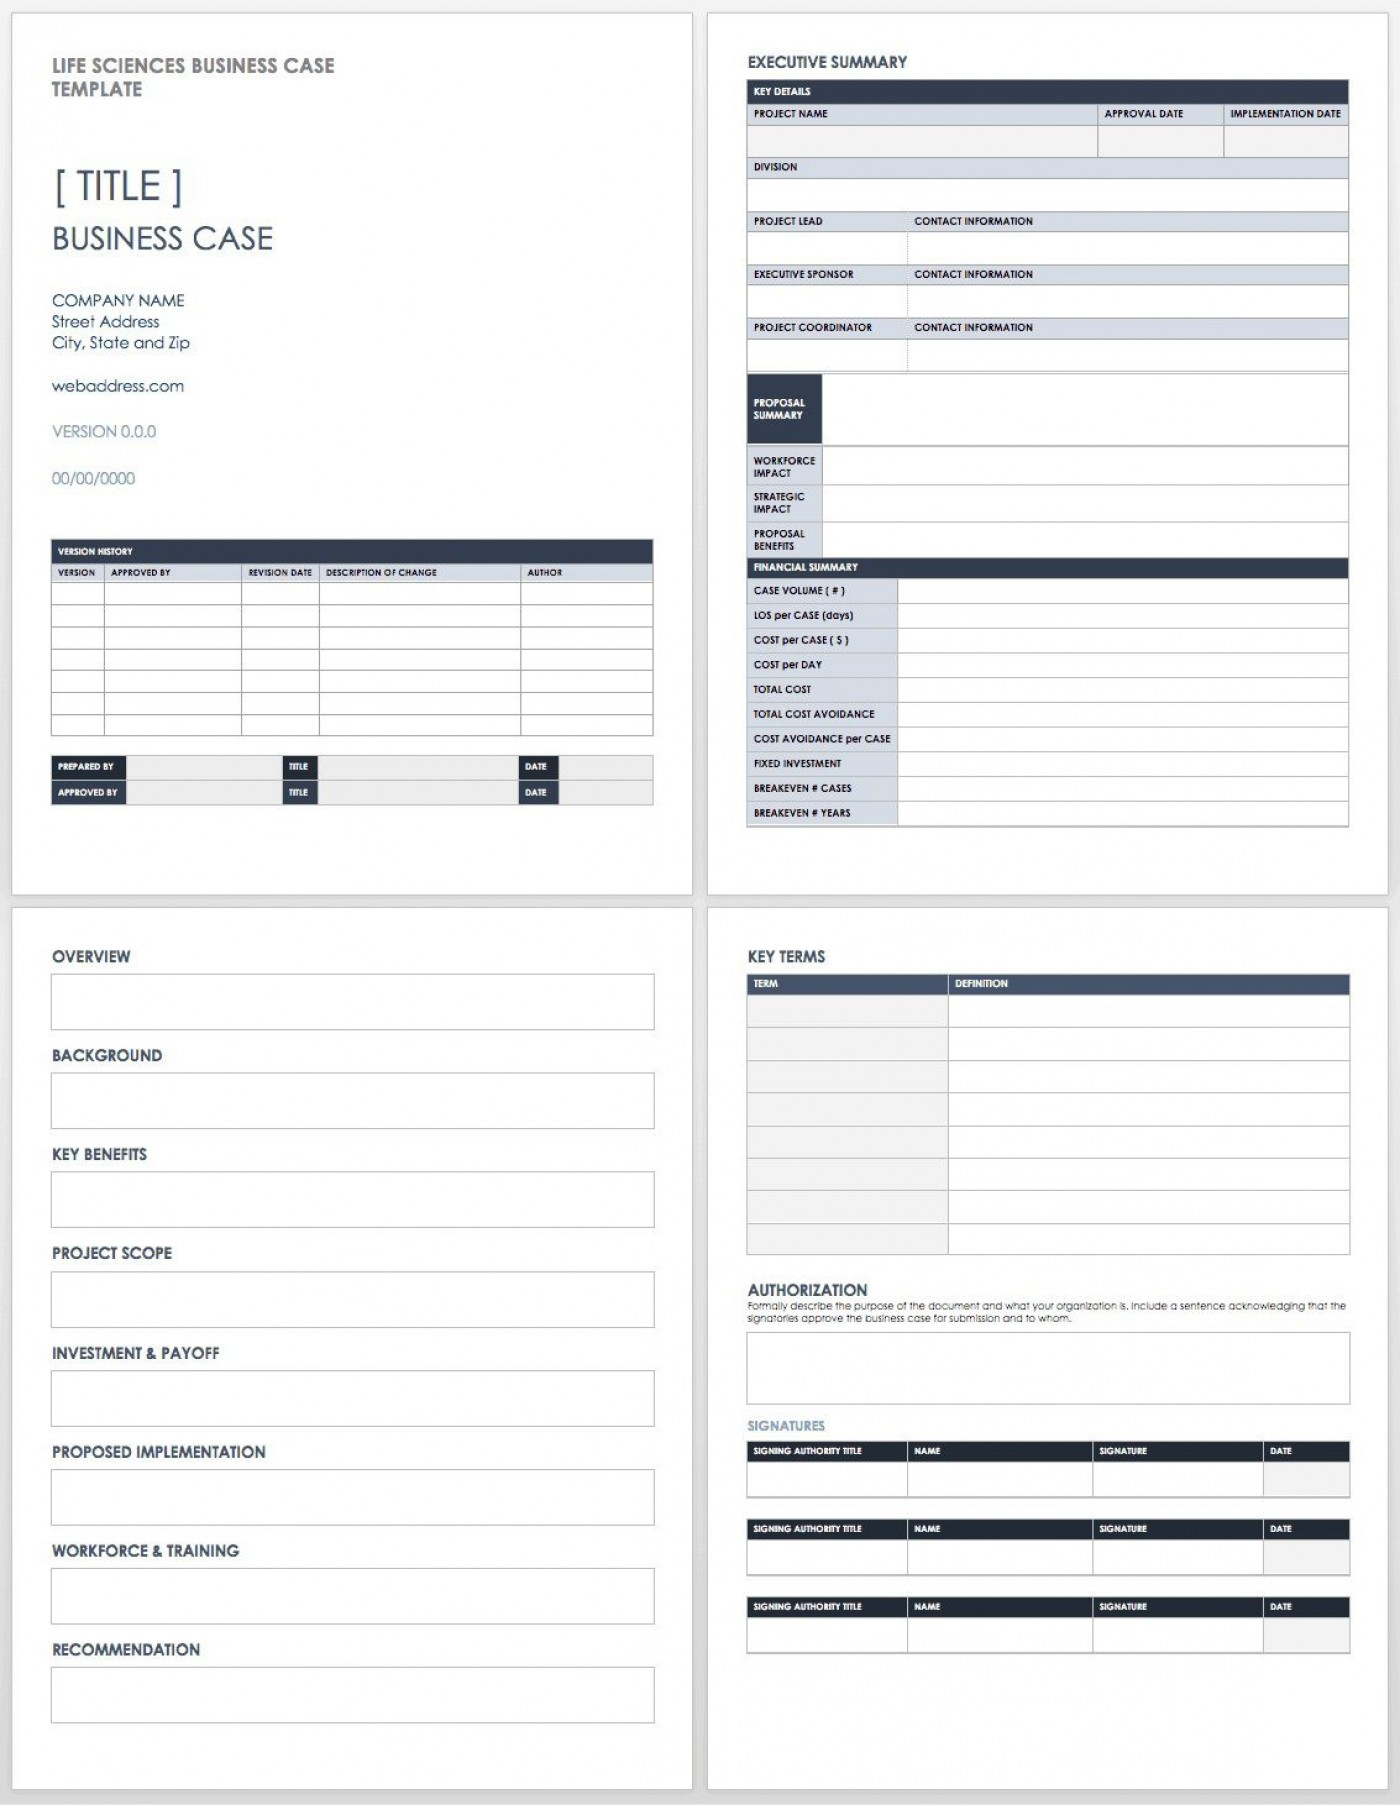 000 Amazing Use Case Template Word Design  Doc Test1400